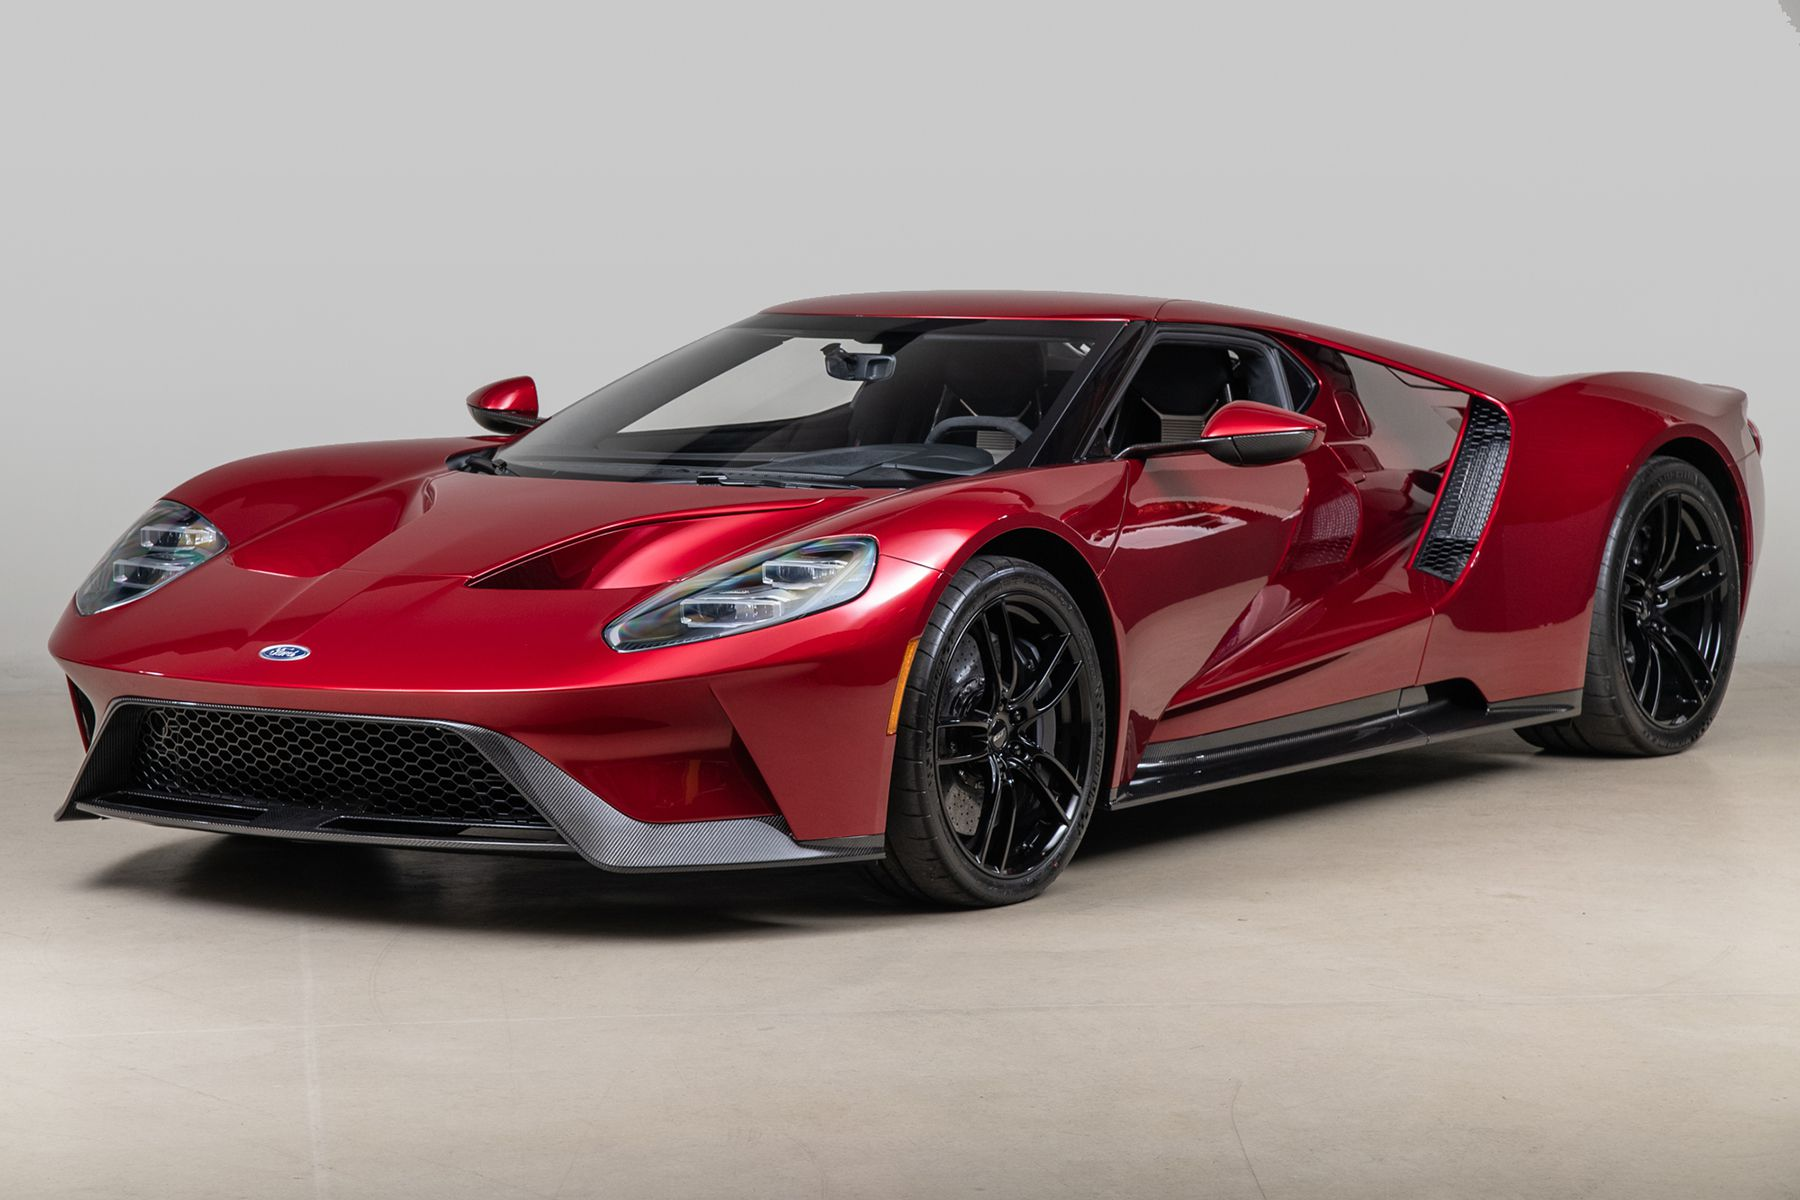 2017 Ford GT Moray Callum (7)